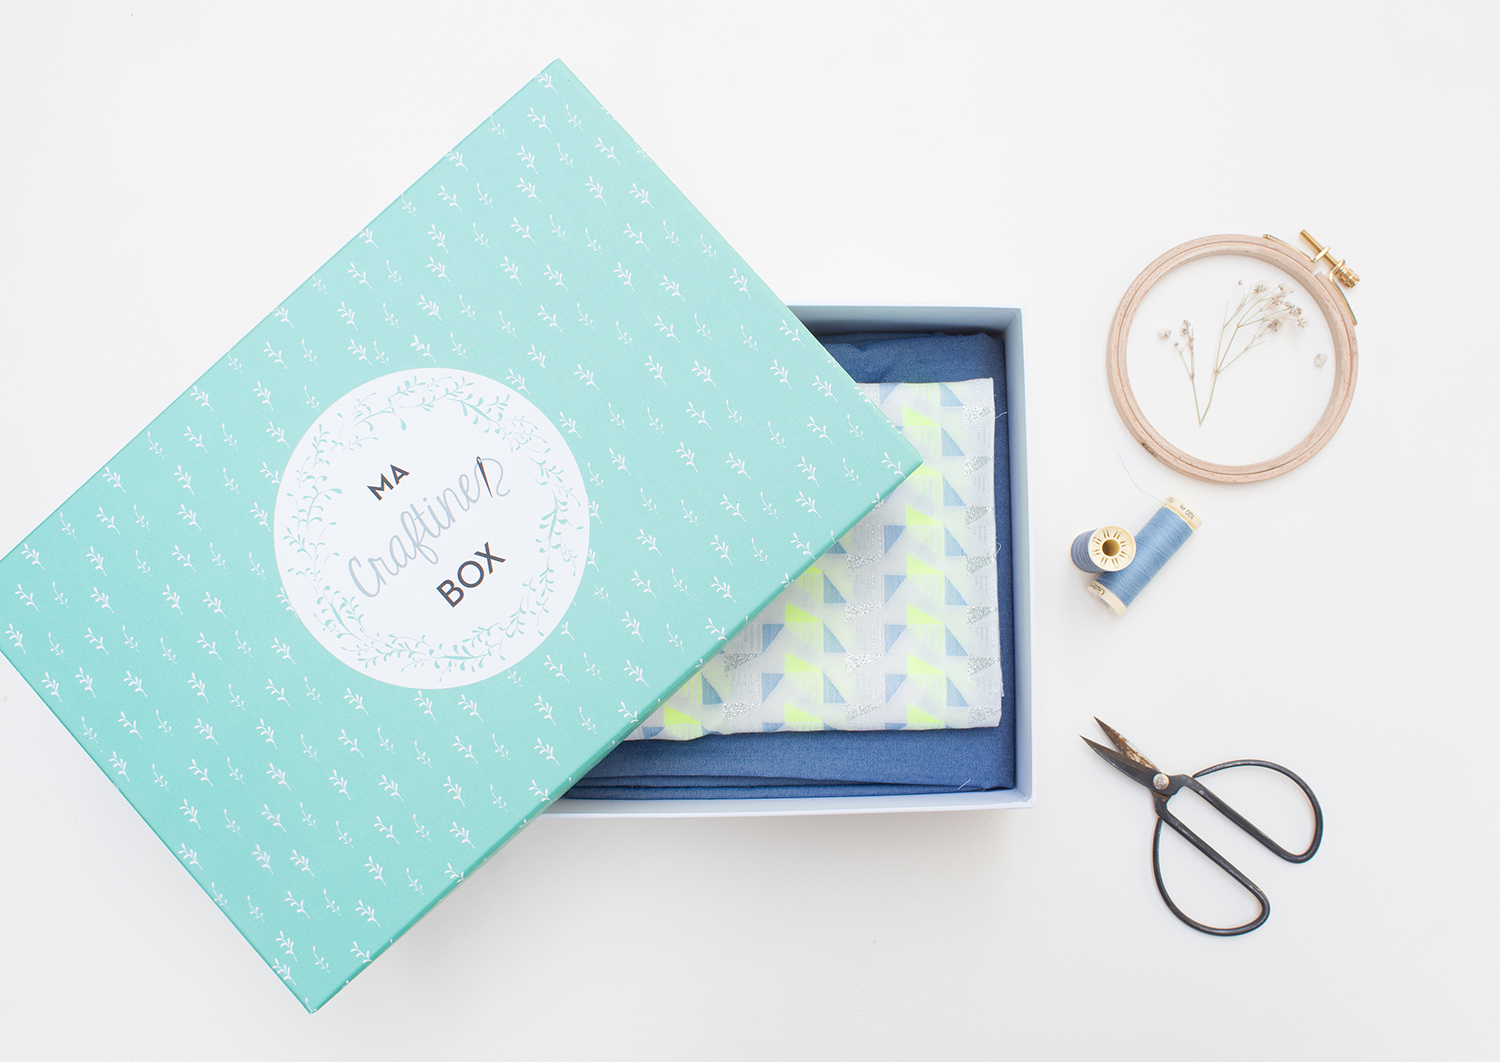 Petite and So What - Craftine Box 2